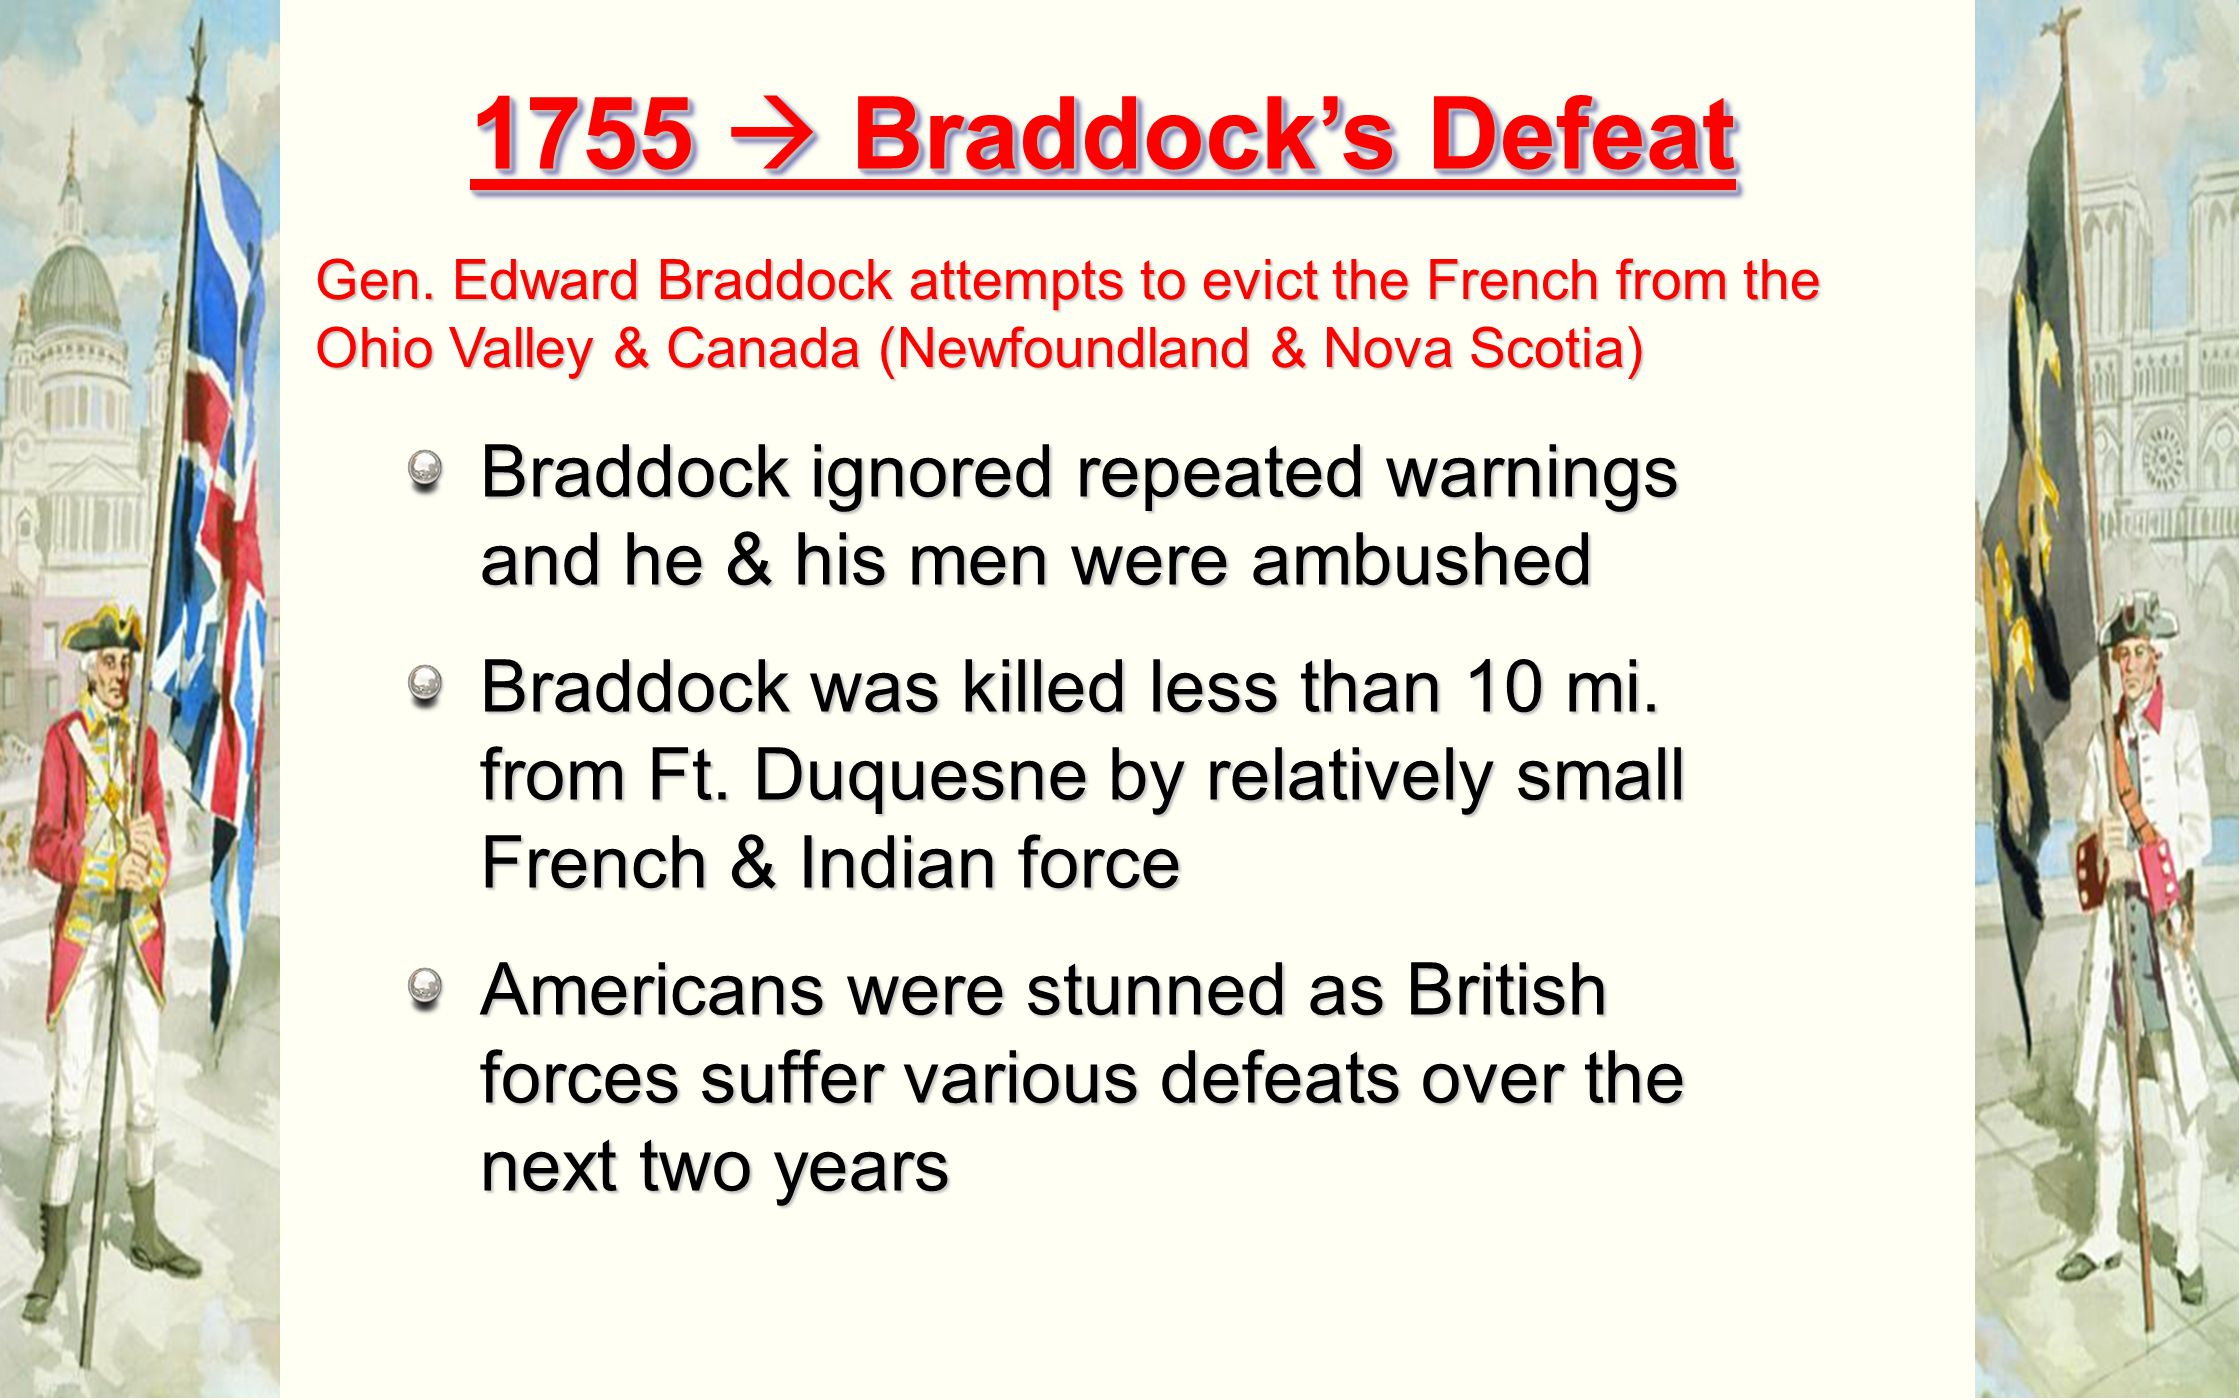 1755  Braddock's Defeat Gen. Edward Braddock attempts to evict the French from the Ohio Valley & Canada (Newfoundland & Nova Scotia)